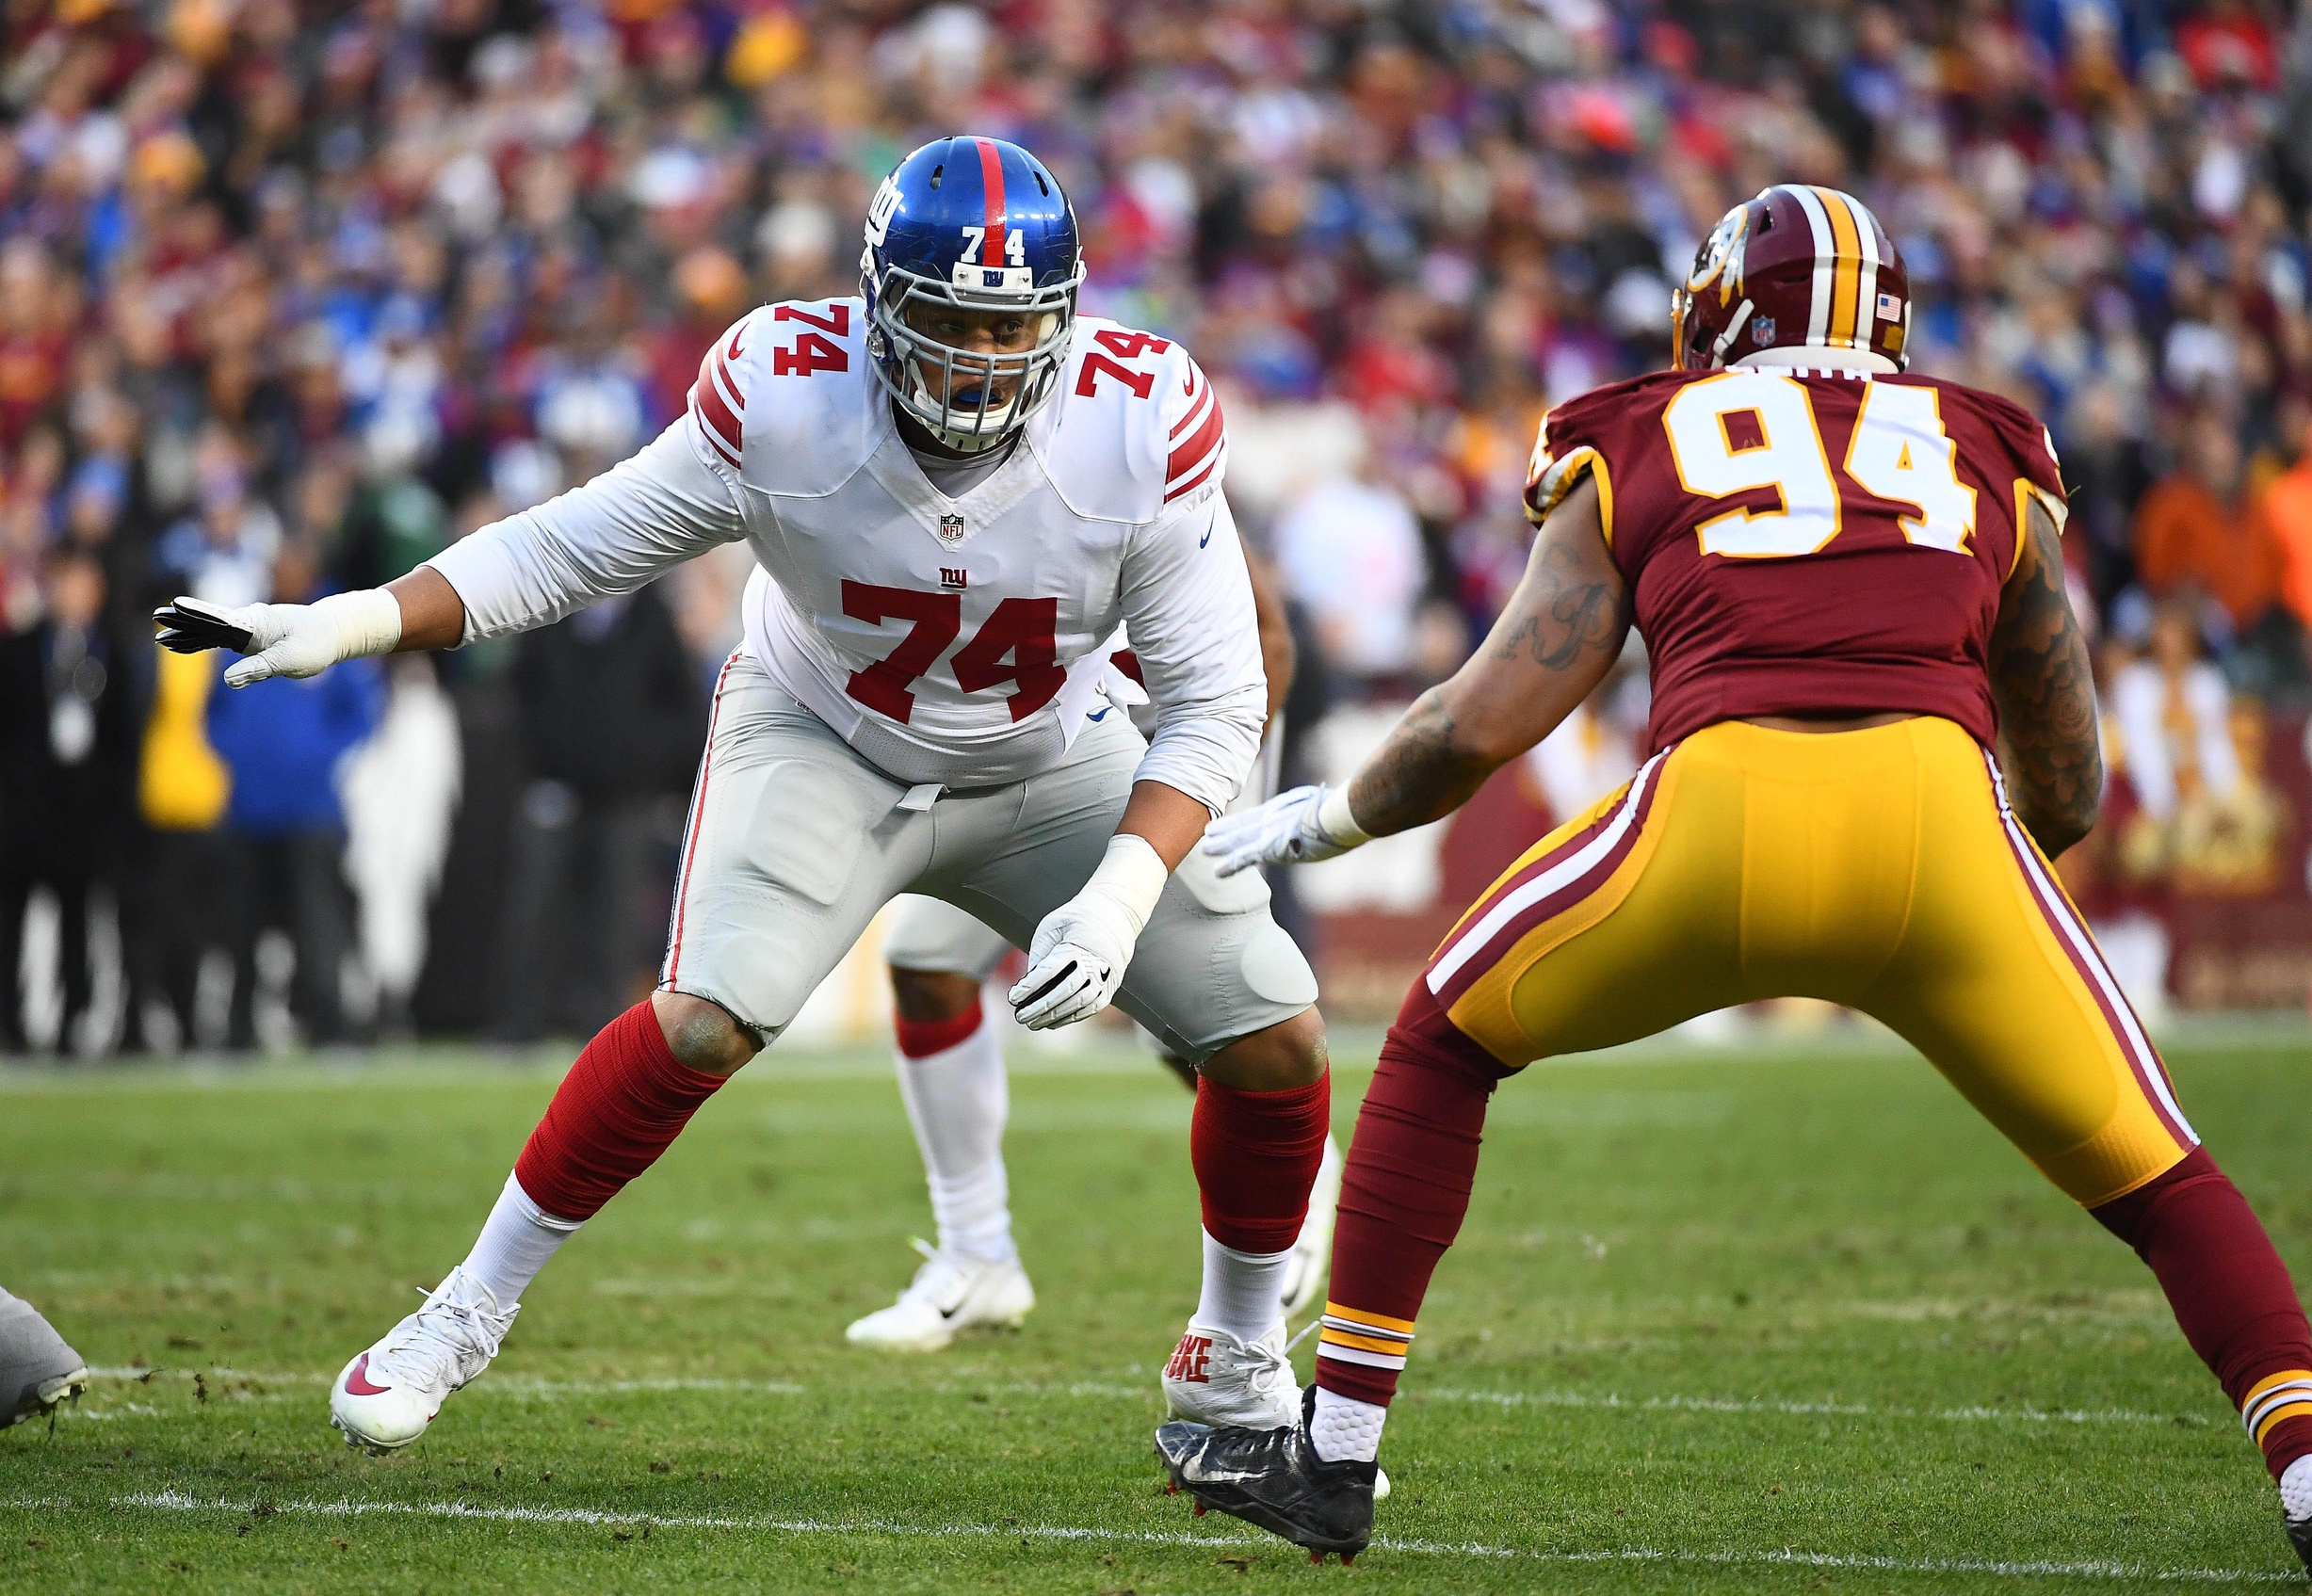 Giants cut Ereck Flowers after tumultuous struggles